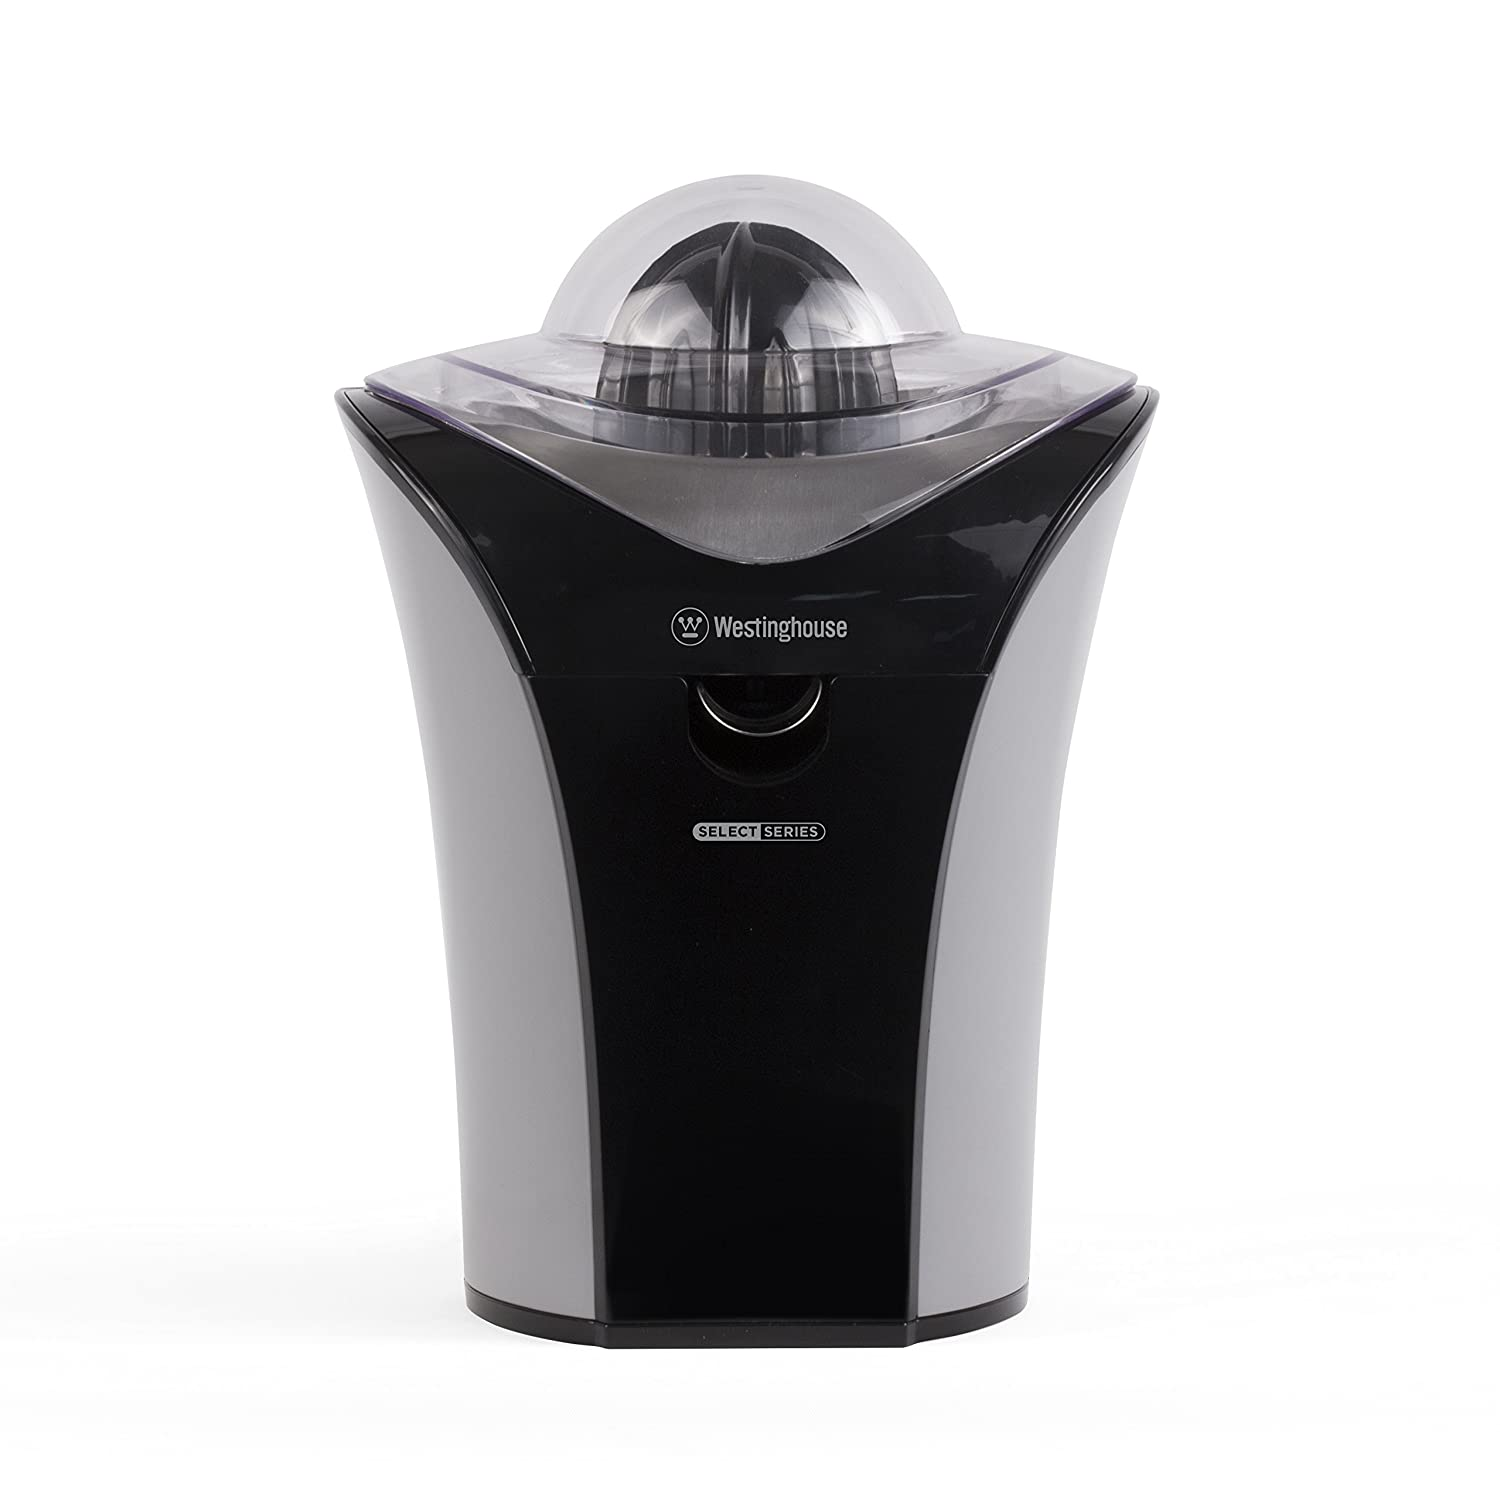 Westinghouse Wjc1 Bga Select Series Electric Citrus Juicer, Black by Westinghouse